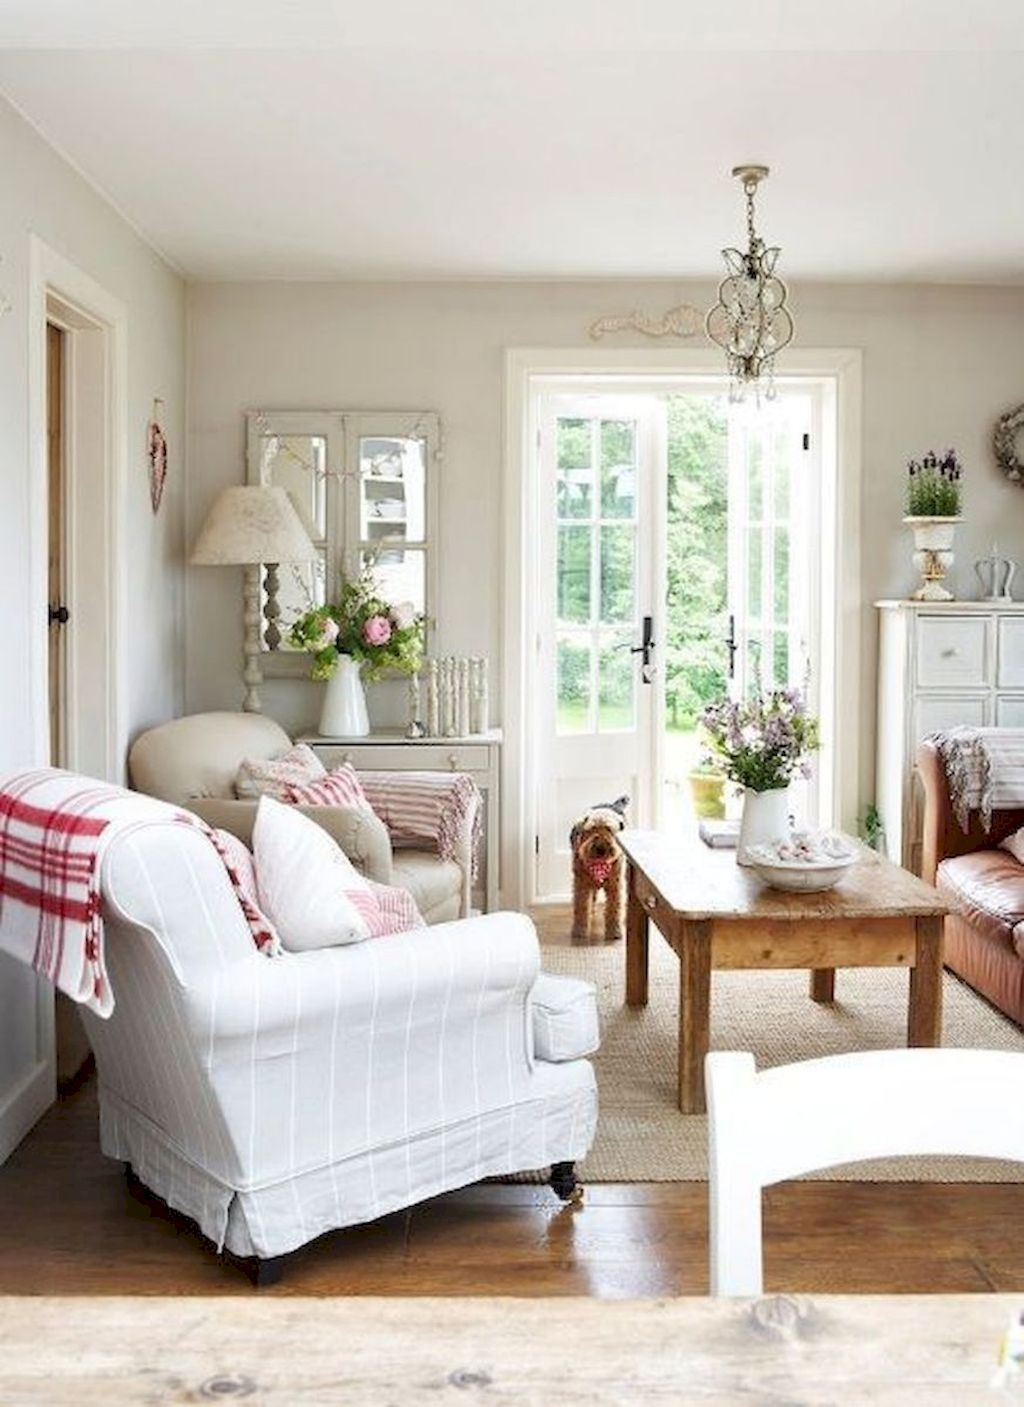 French Country Living Room Furniture & Decor Ideas (73 | Pinterest ...